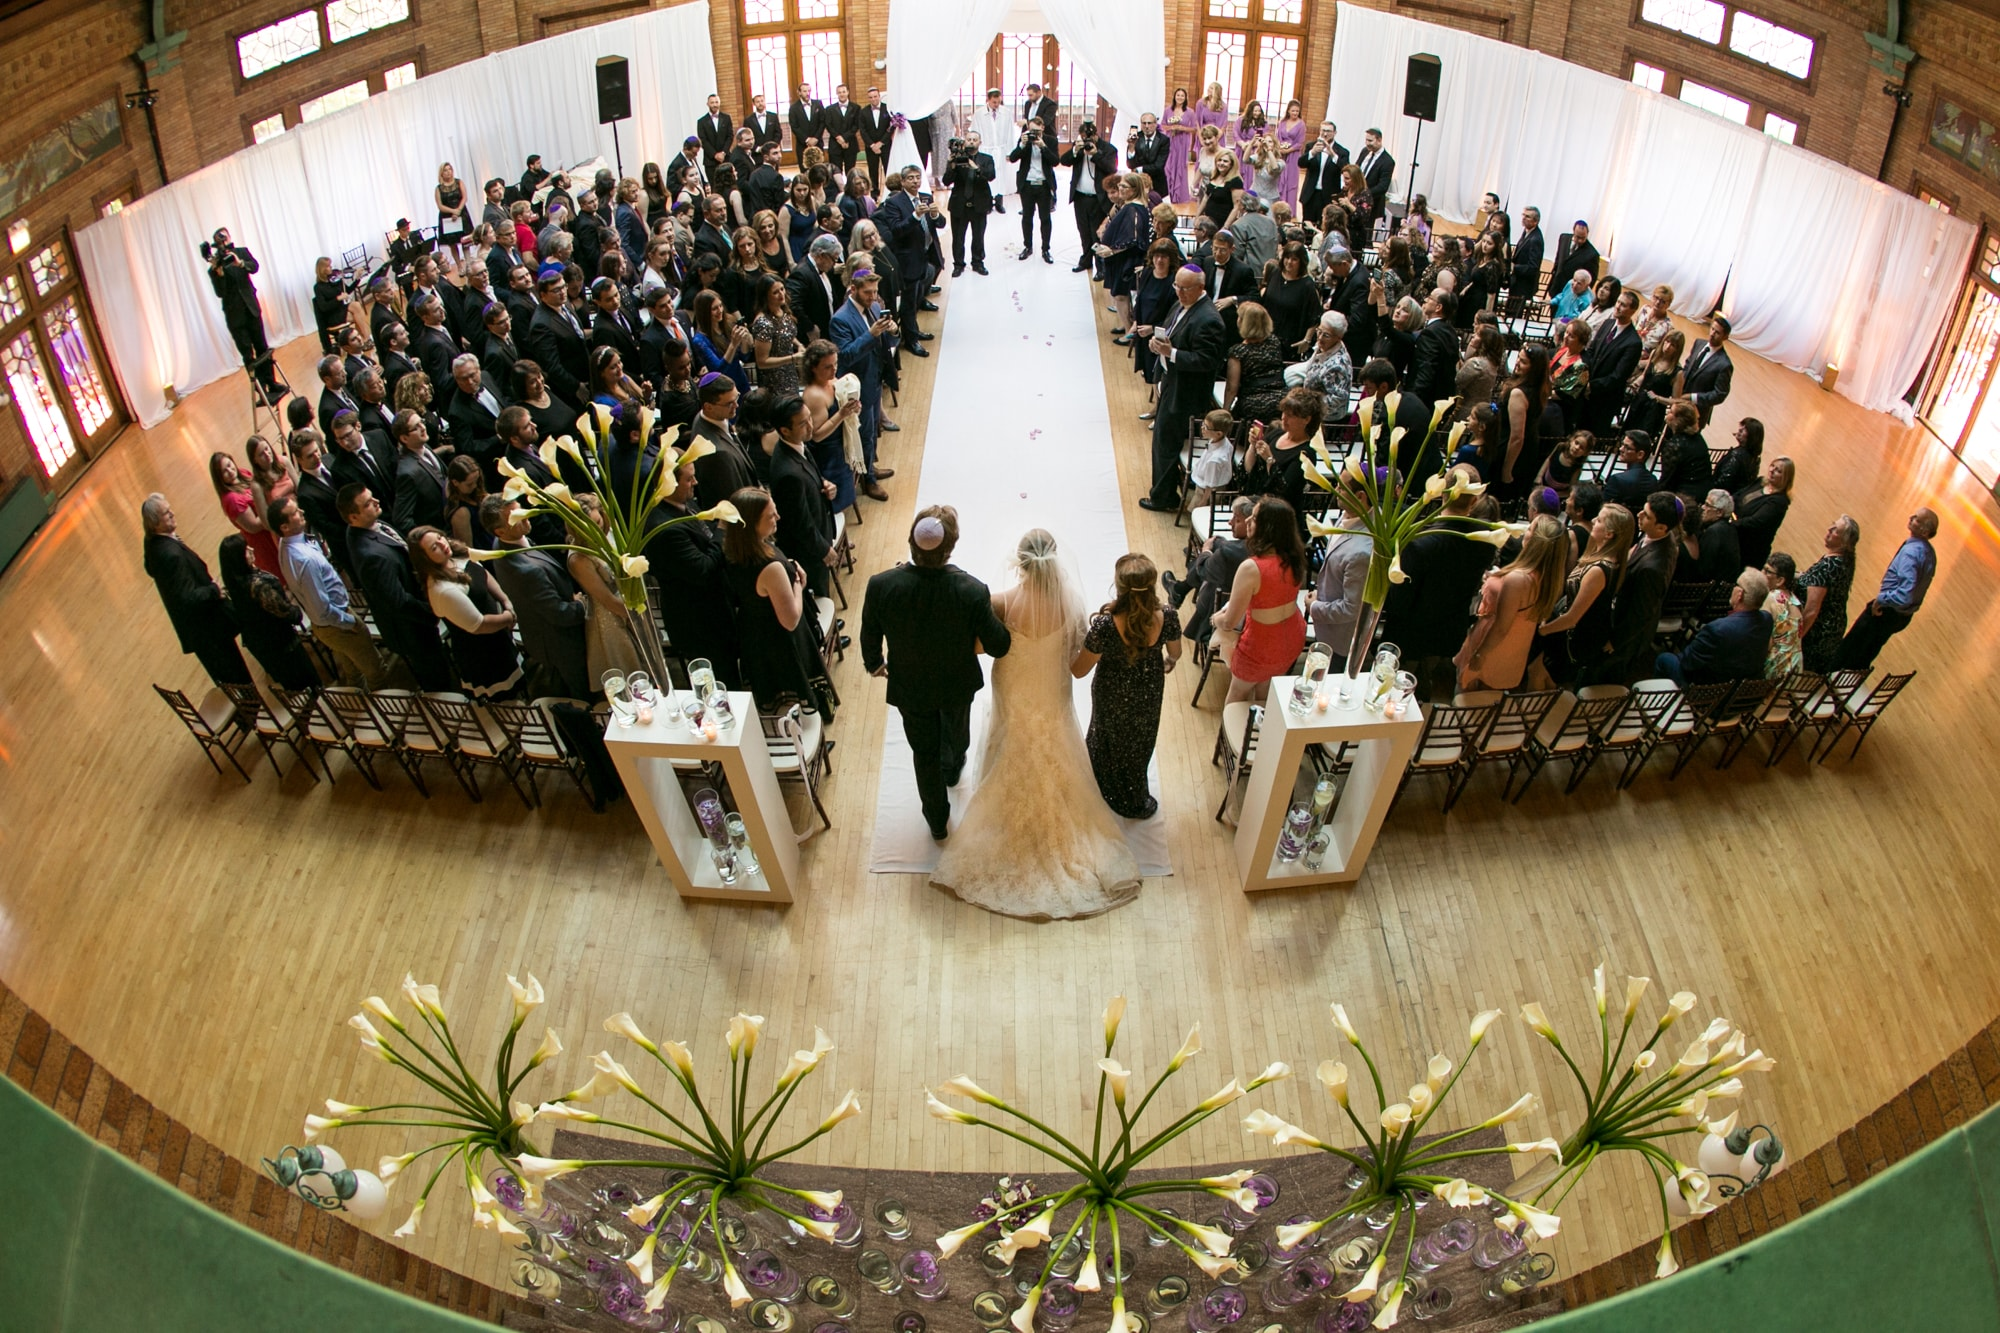 Wedding ceremony photo at Cafe Brauer from balcony